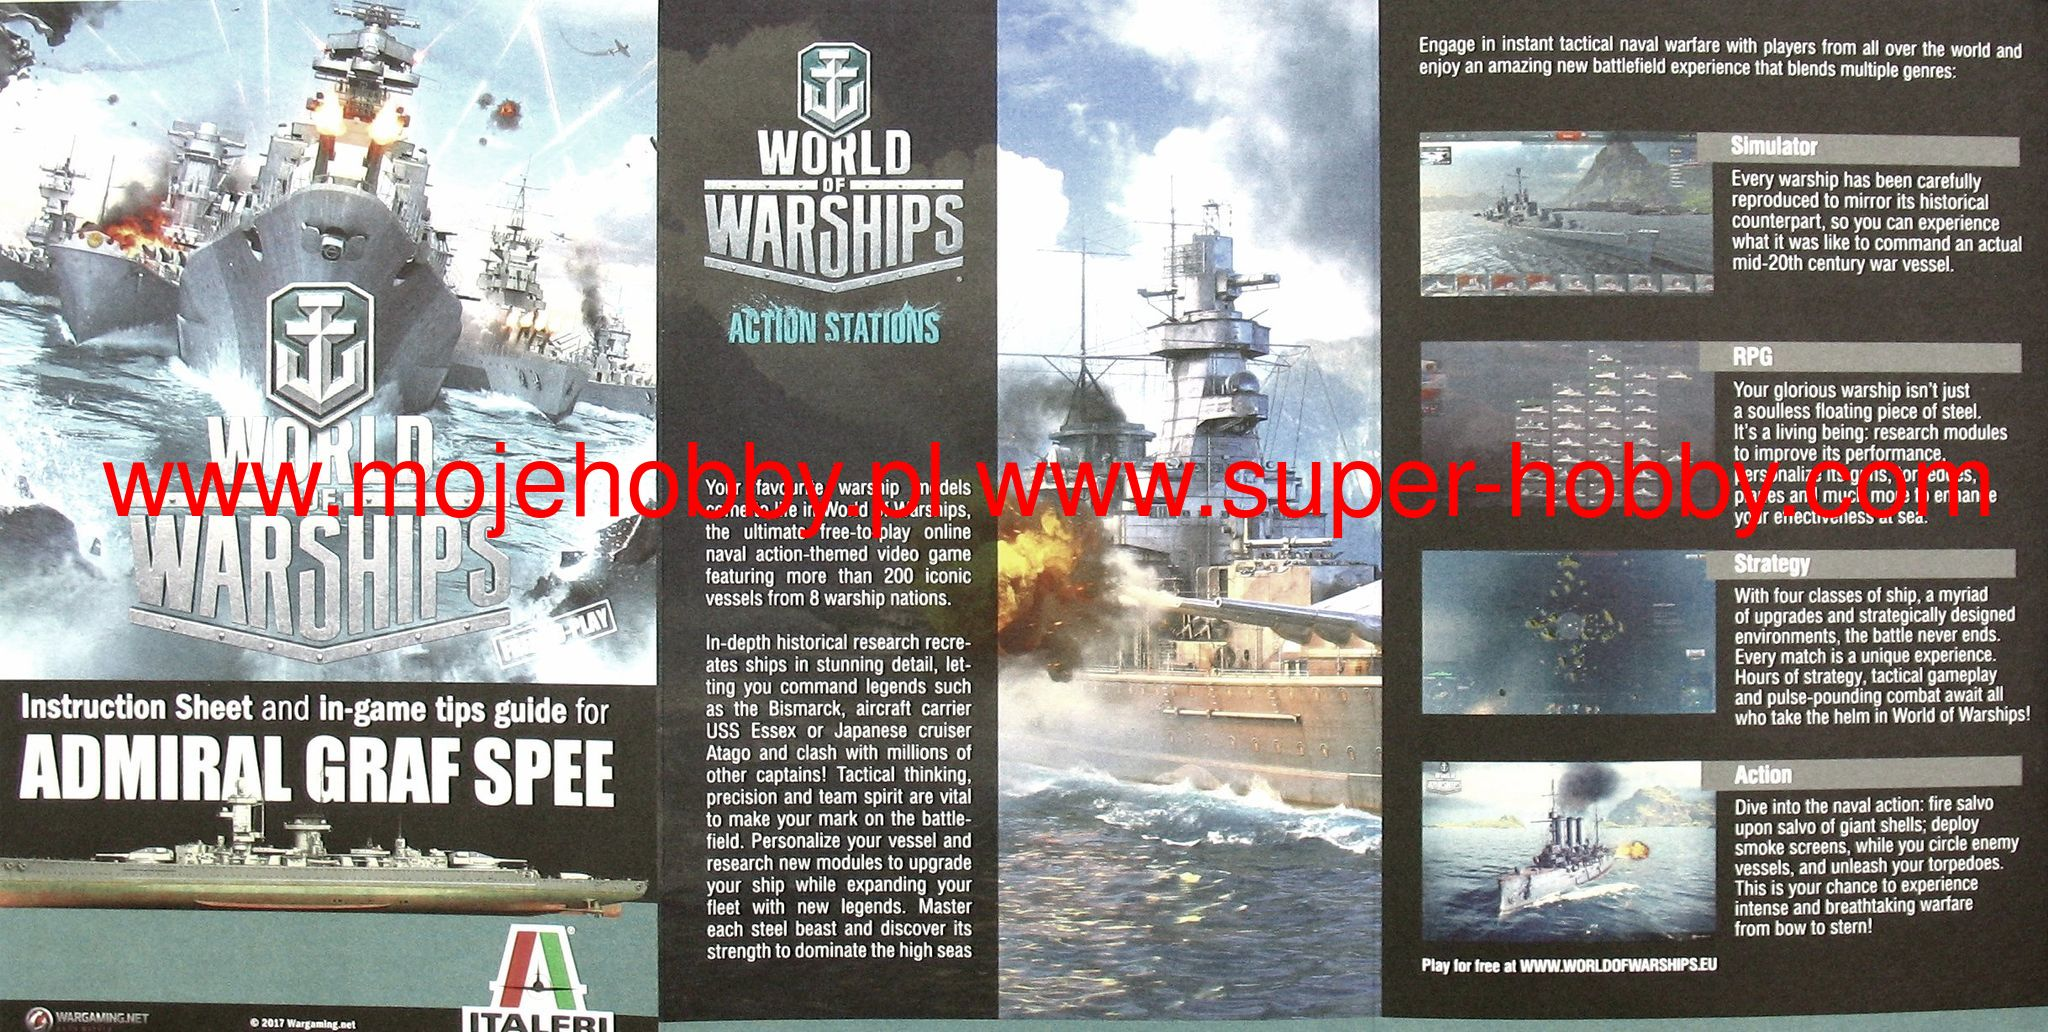 World of Warships - Admiral Graf Spee - Action Stations